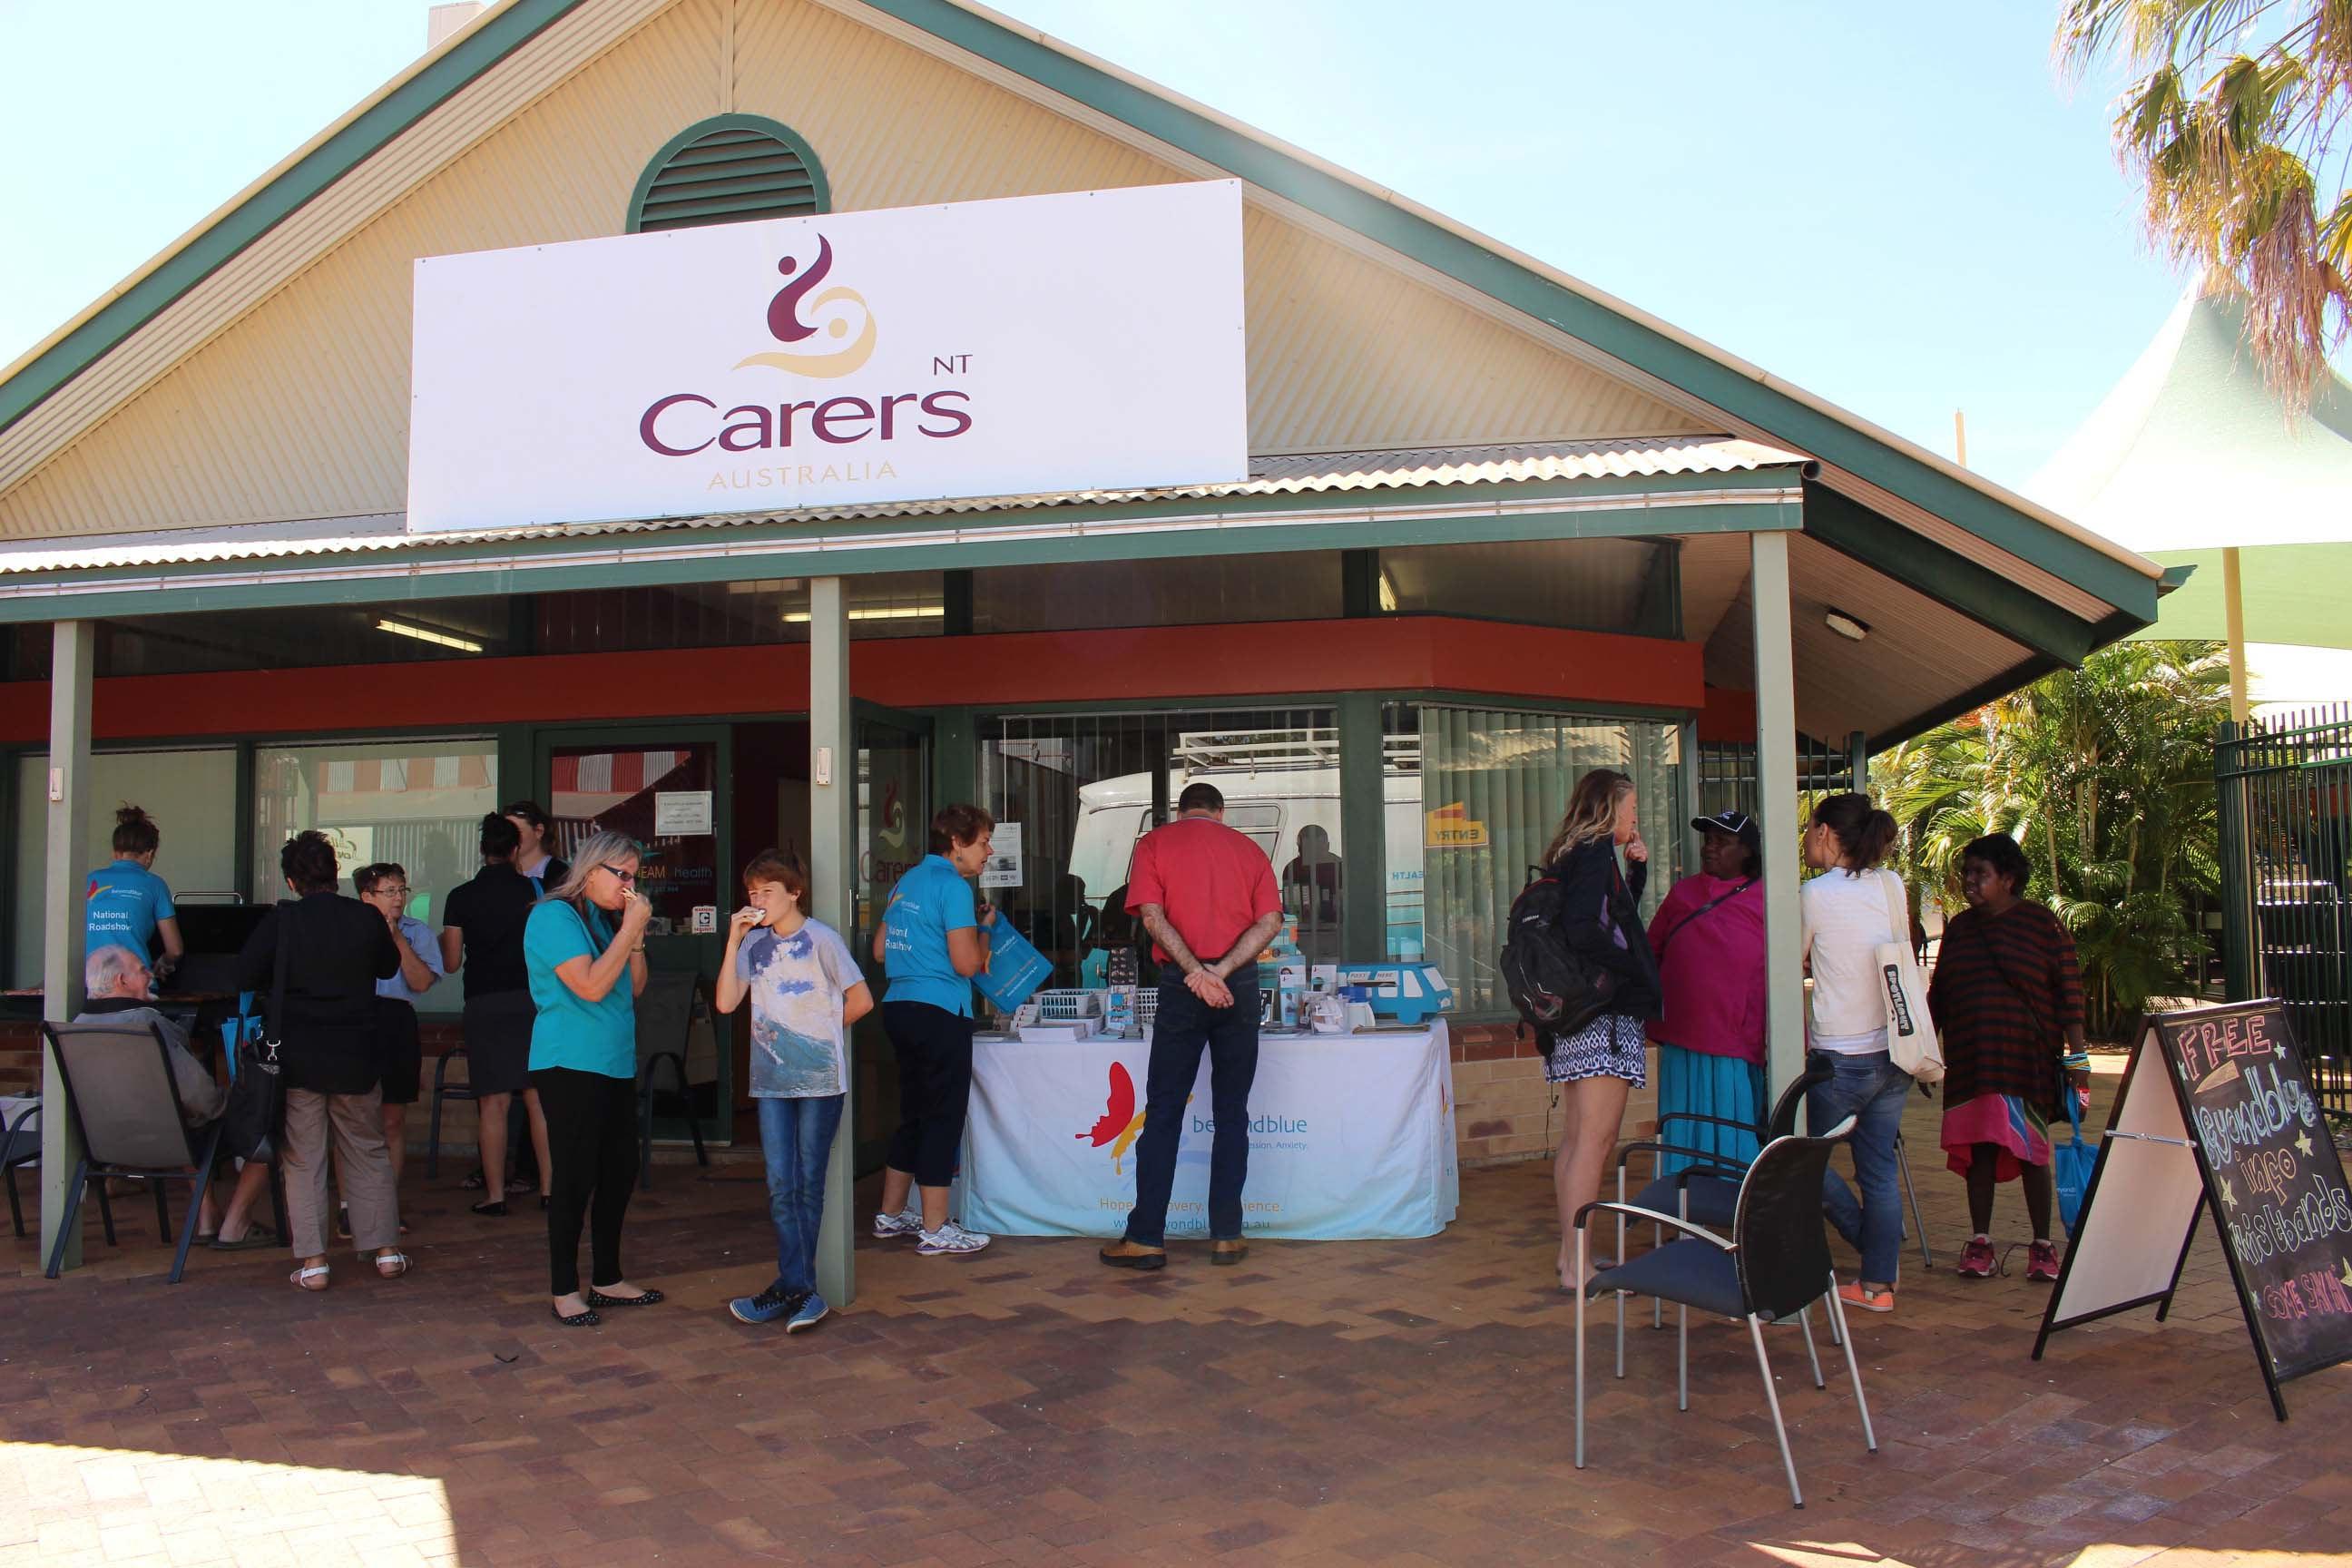 Locals in Katherine dropped by the Carers NT office for a free barbecue and to chat with Beyond Blue.